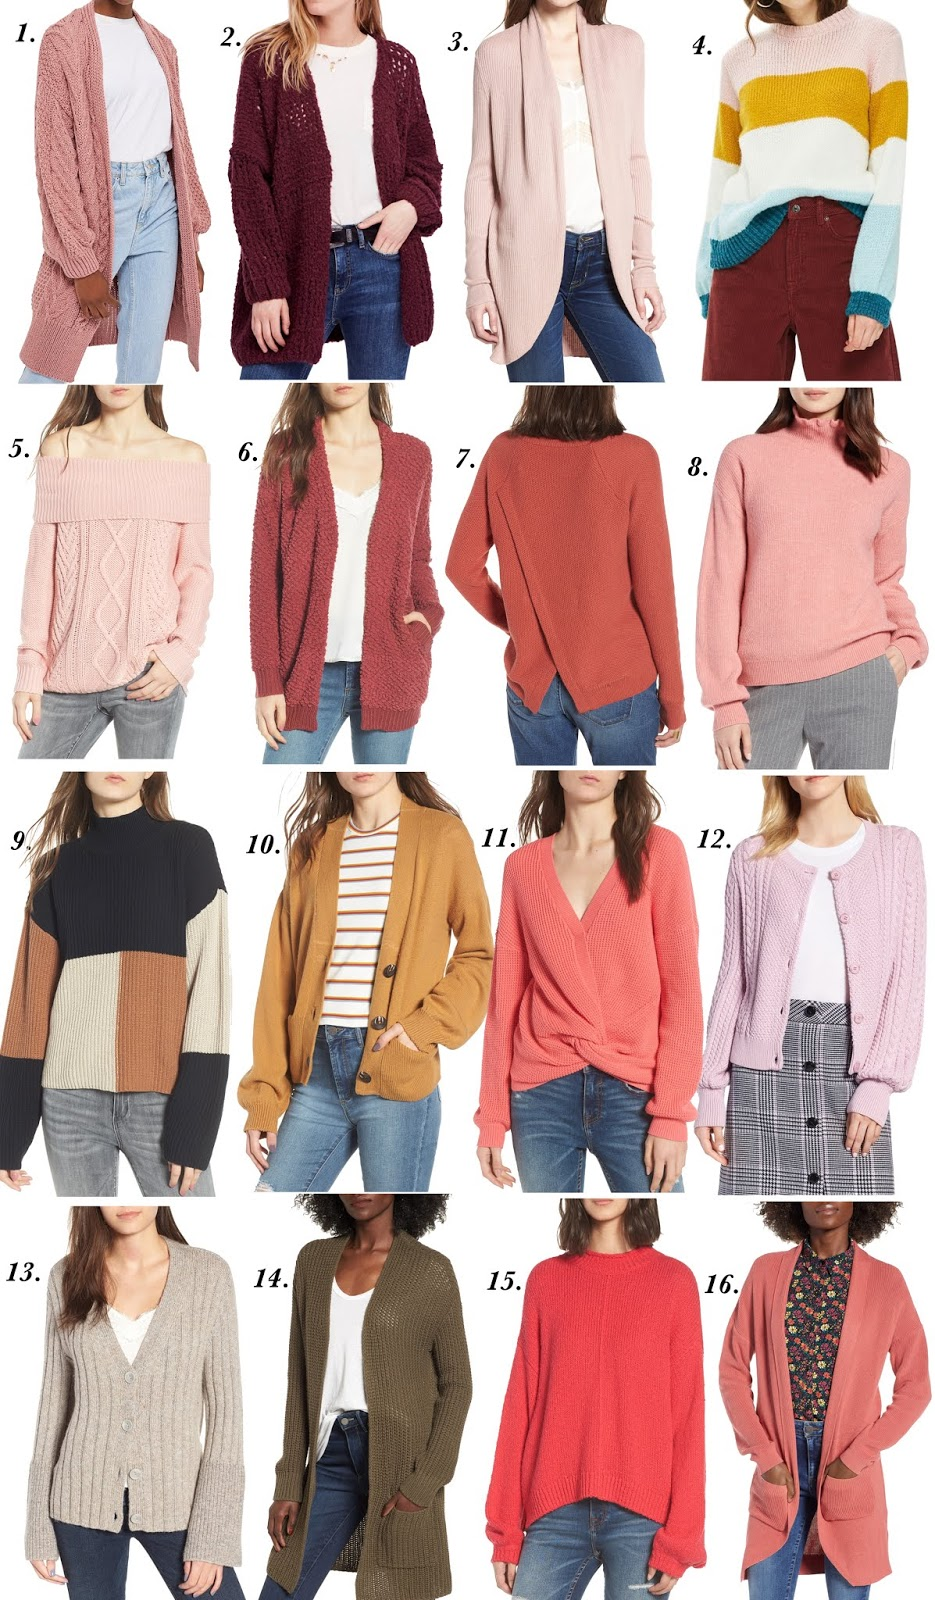 2018 Nordstrom Anniversary Sale: Sweaters and Cardigans - Something Delightful Blog